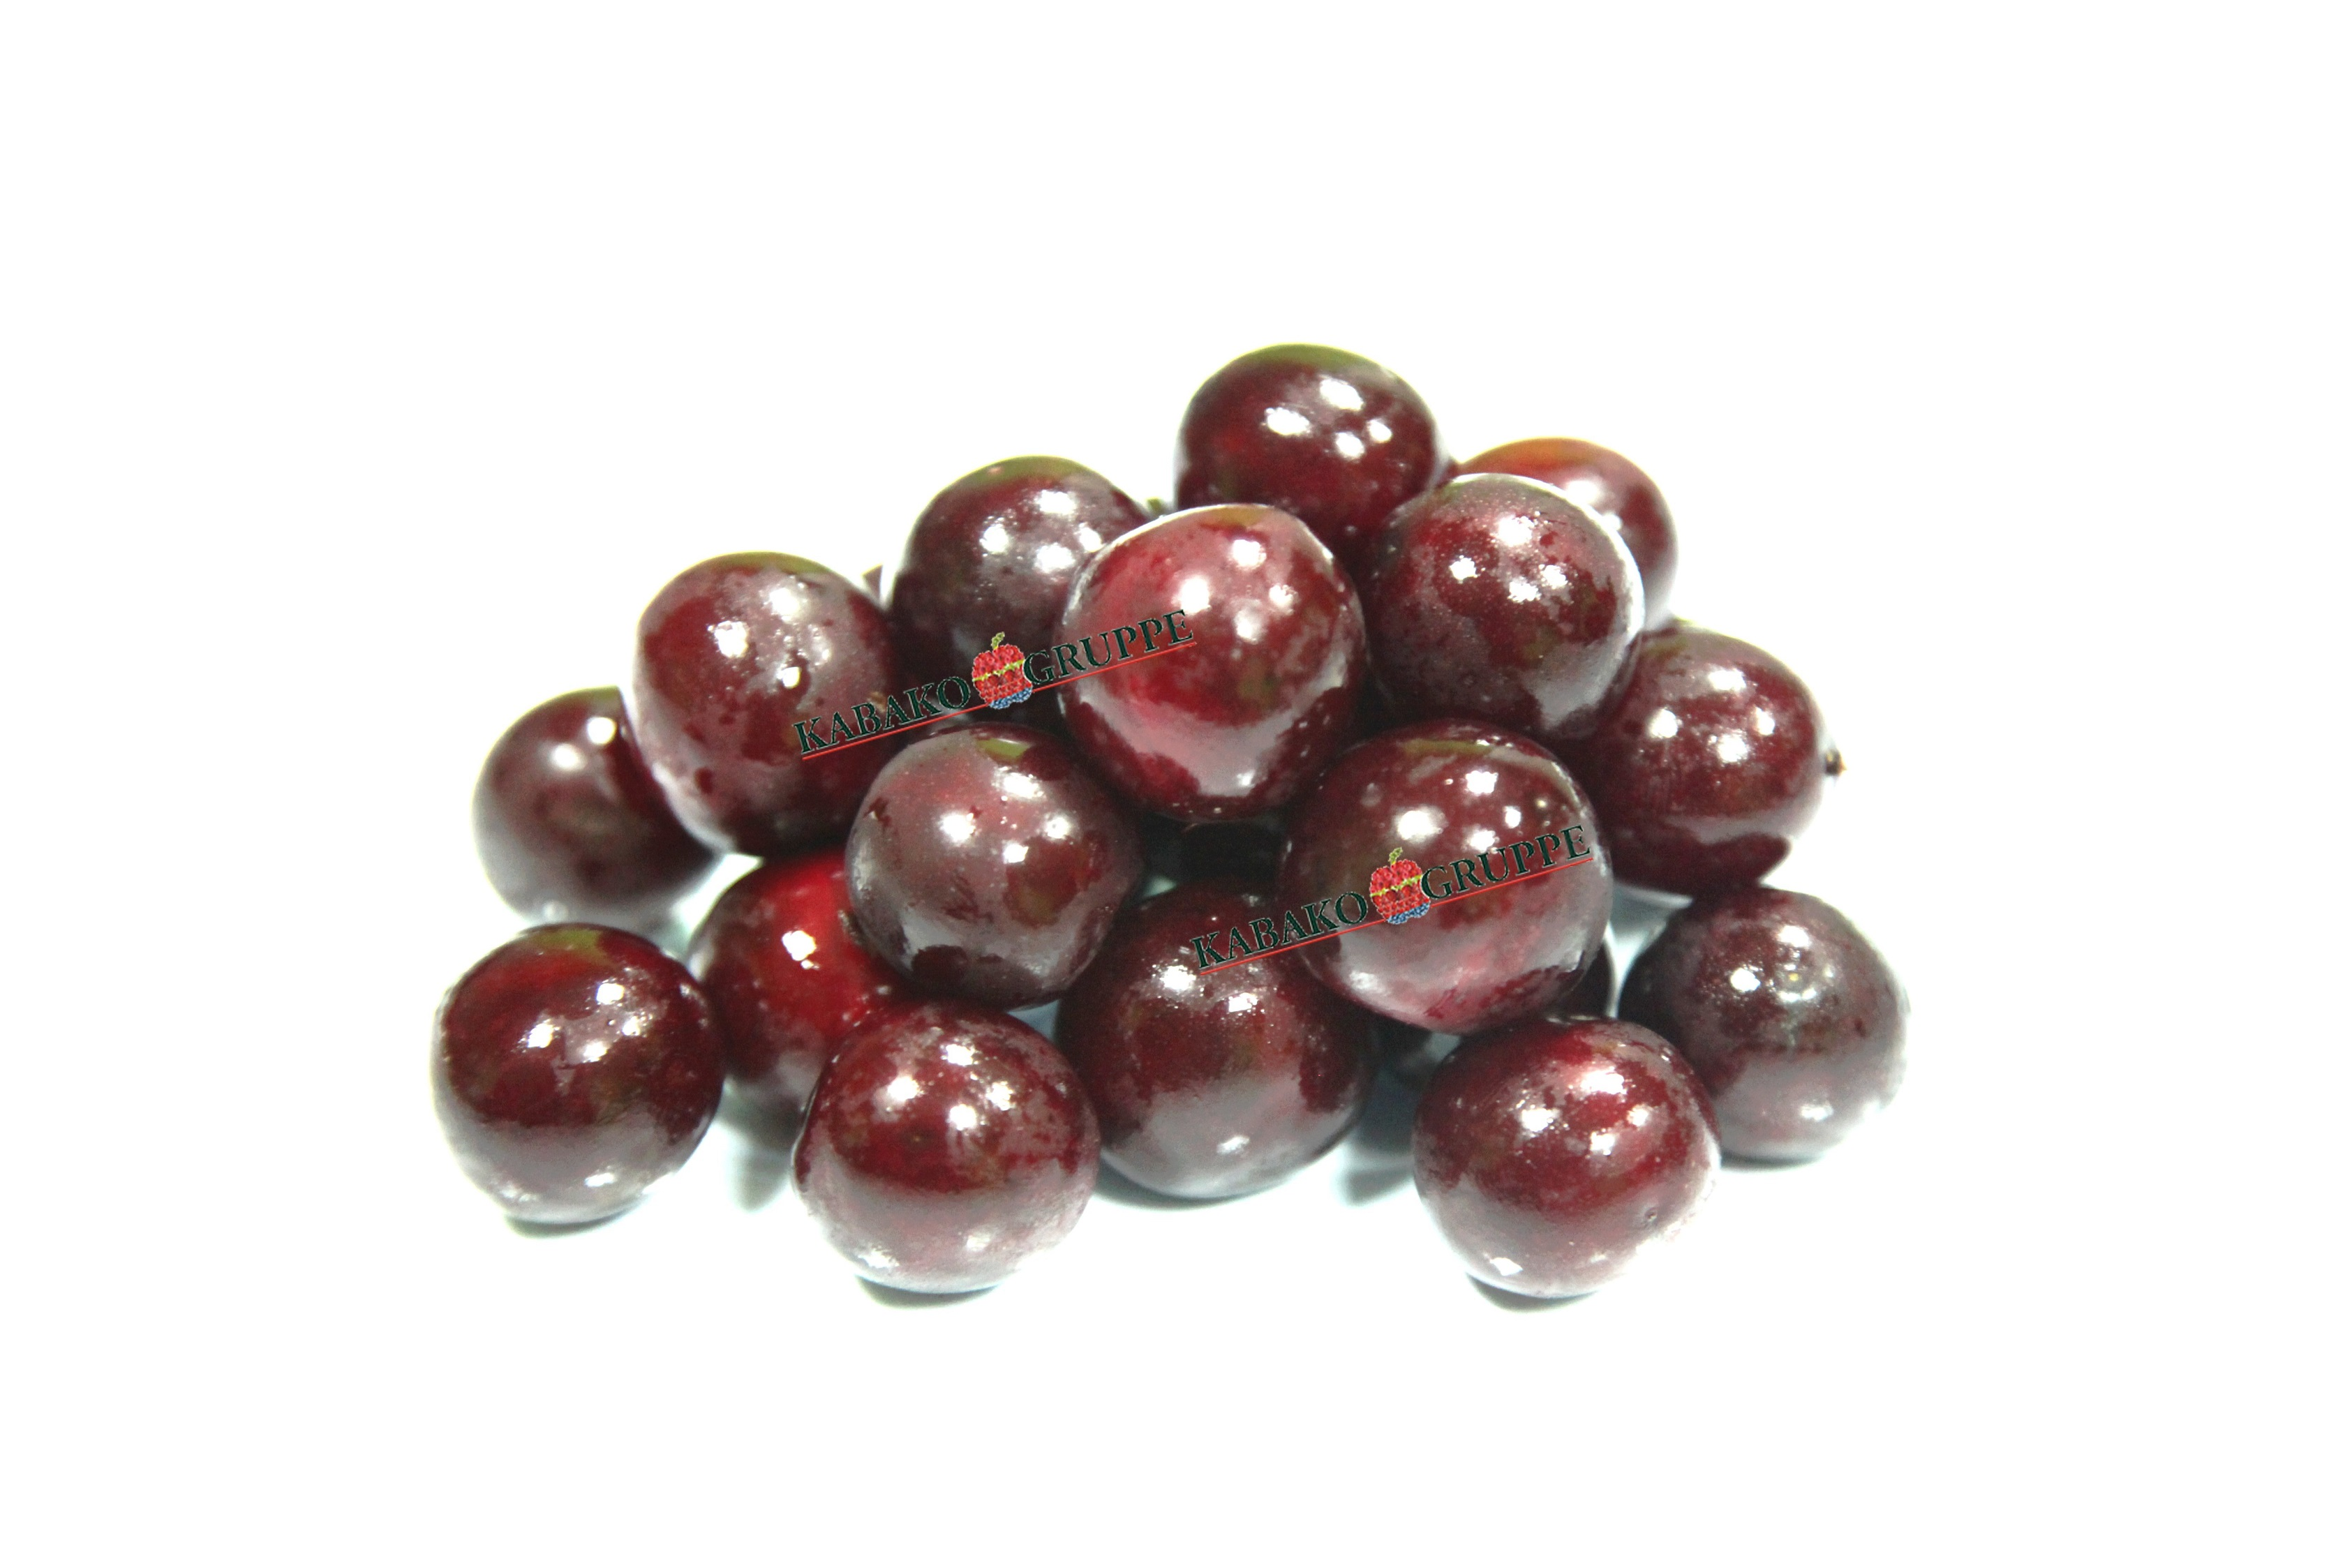 Frozen (IQF) Sour Cherries 6